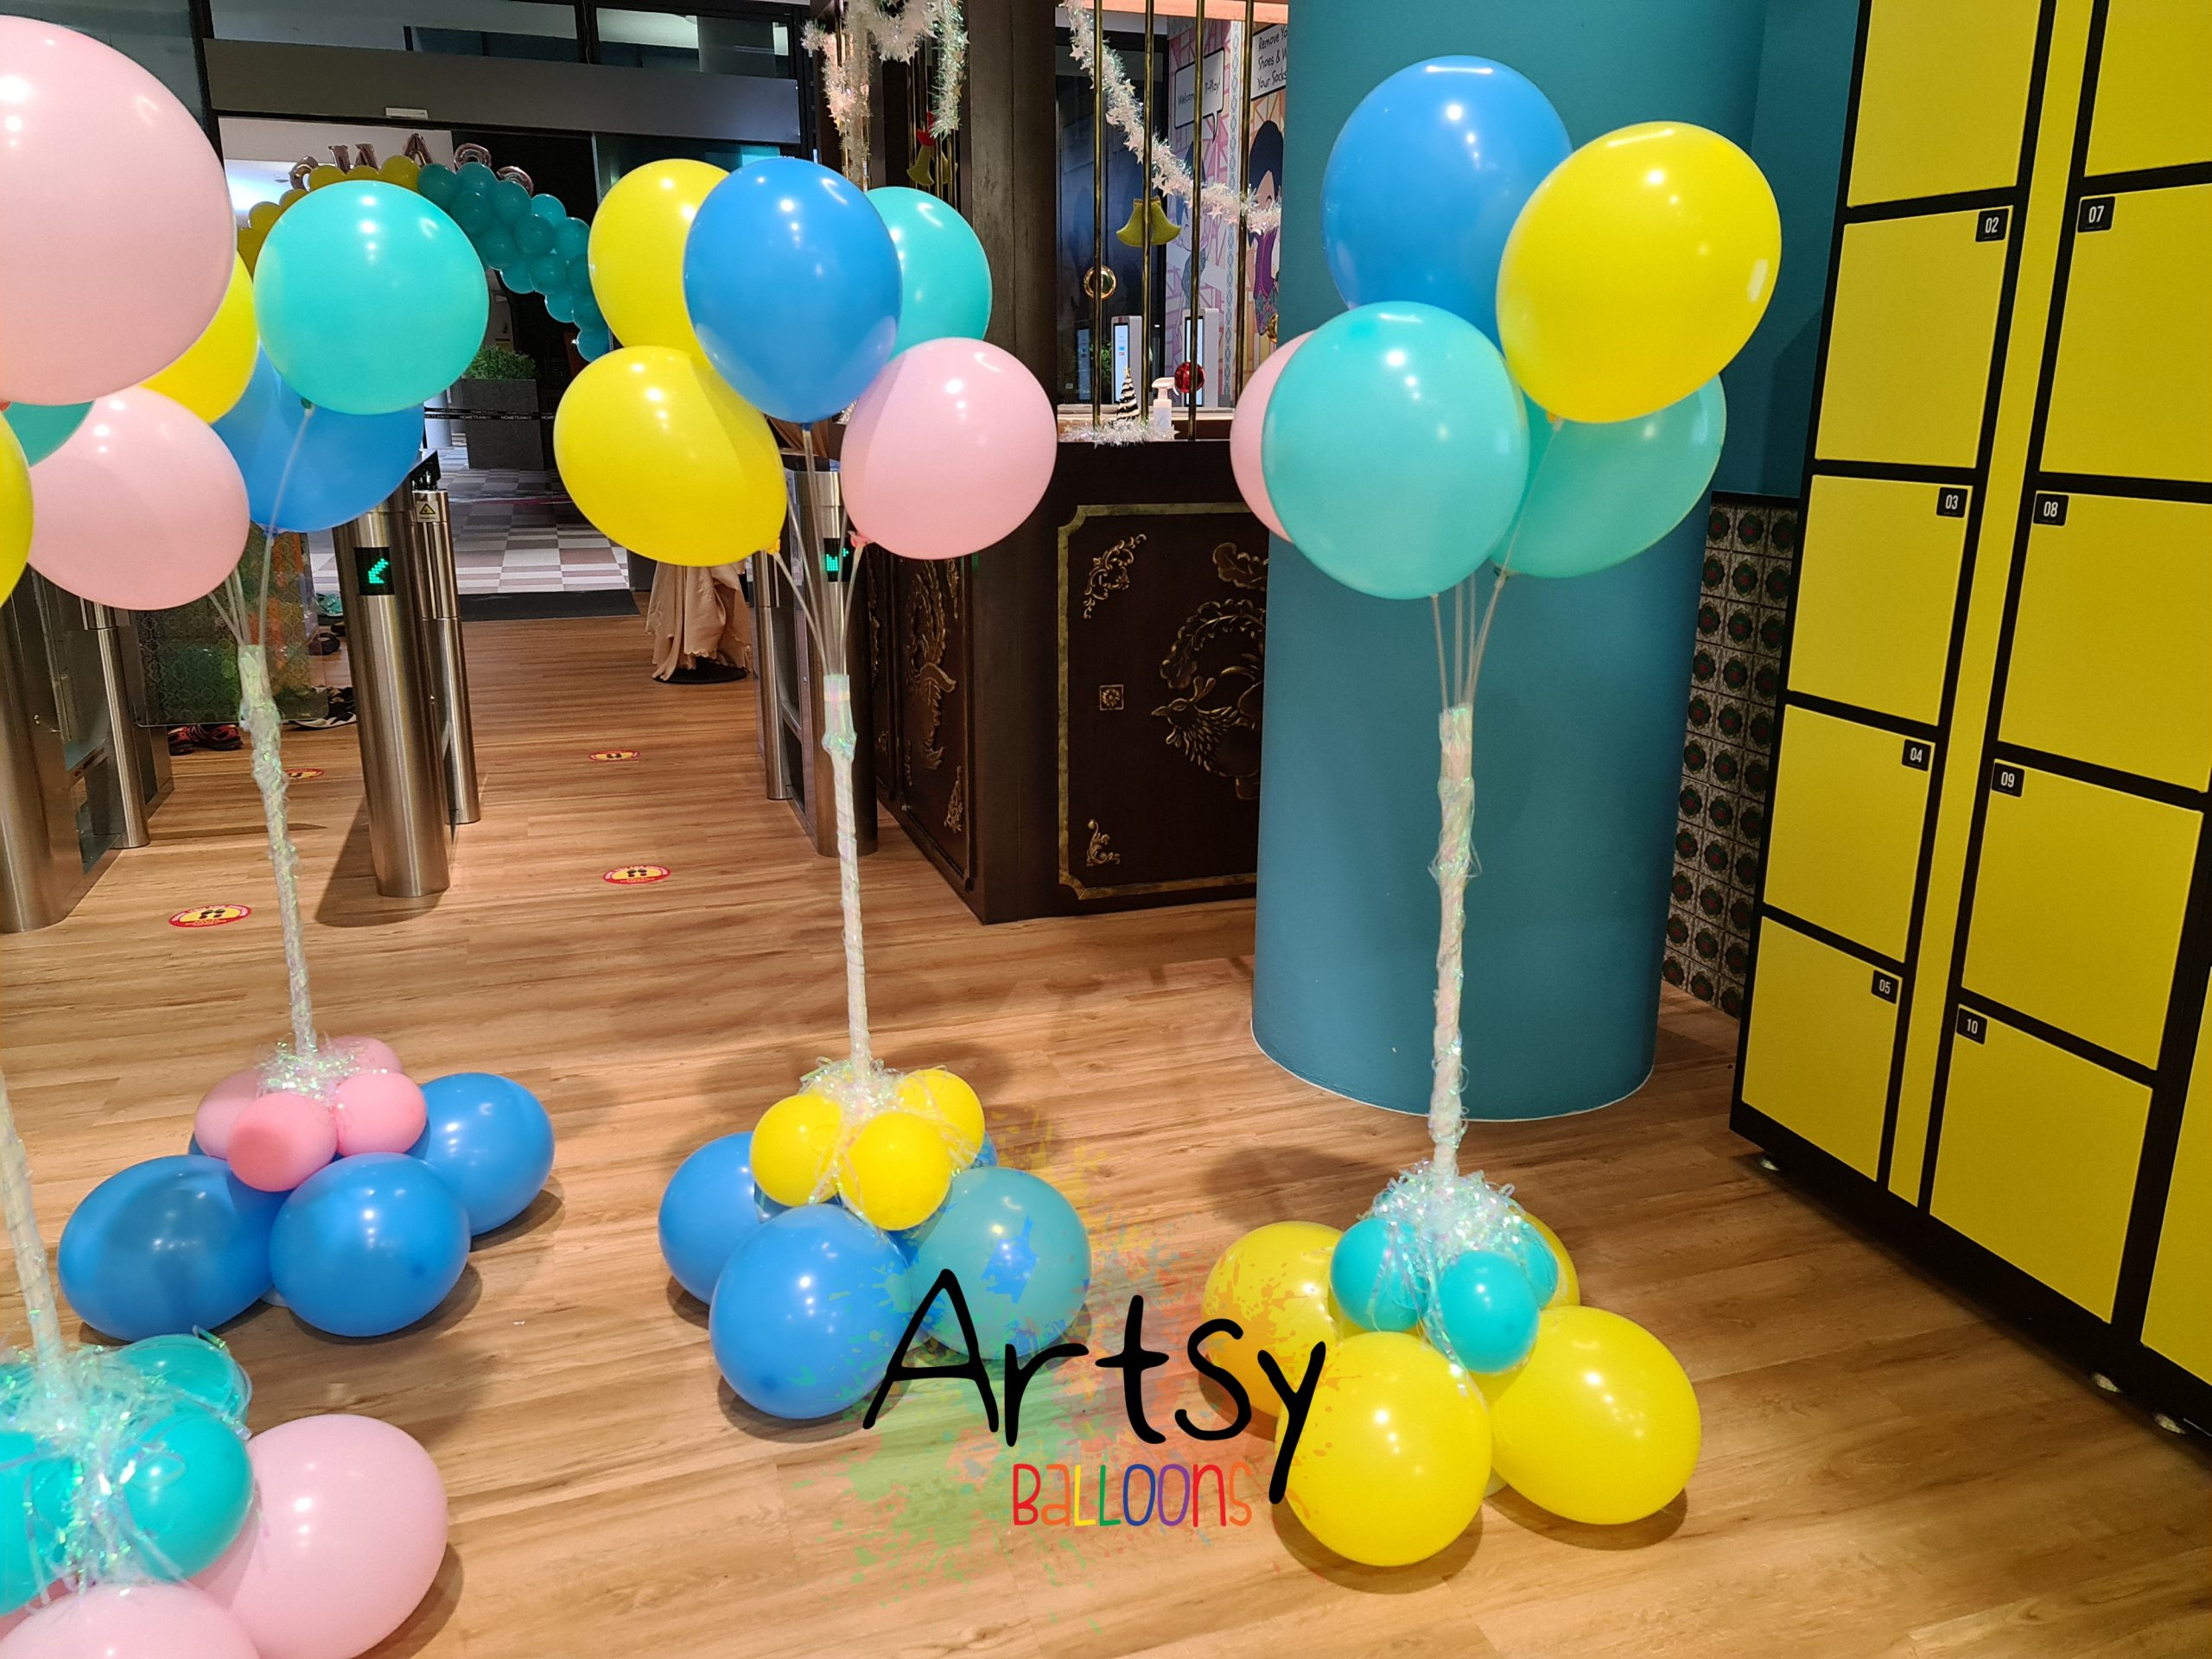 , Grand Opening Balloon Decorations For T-Play Singapore, Singapore Balloon Decoration Services - Balloon Workshop and Balloon Sculpting